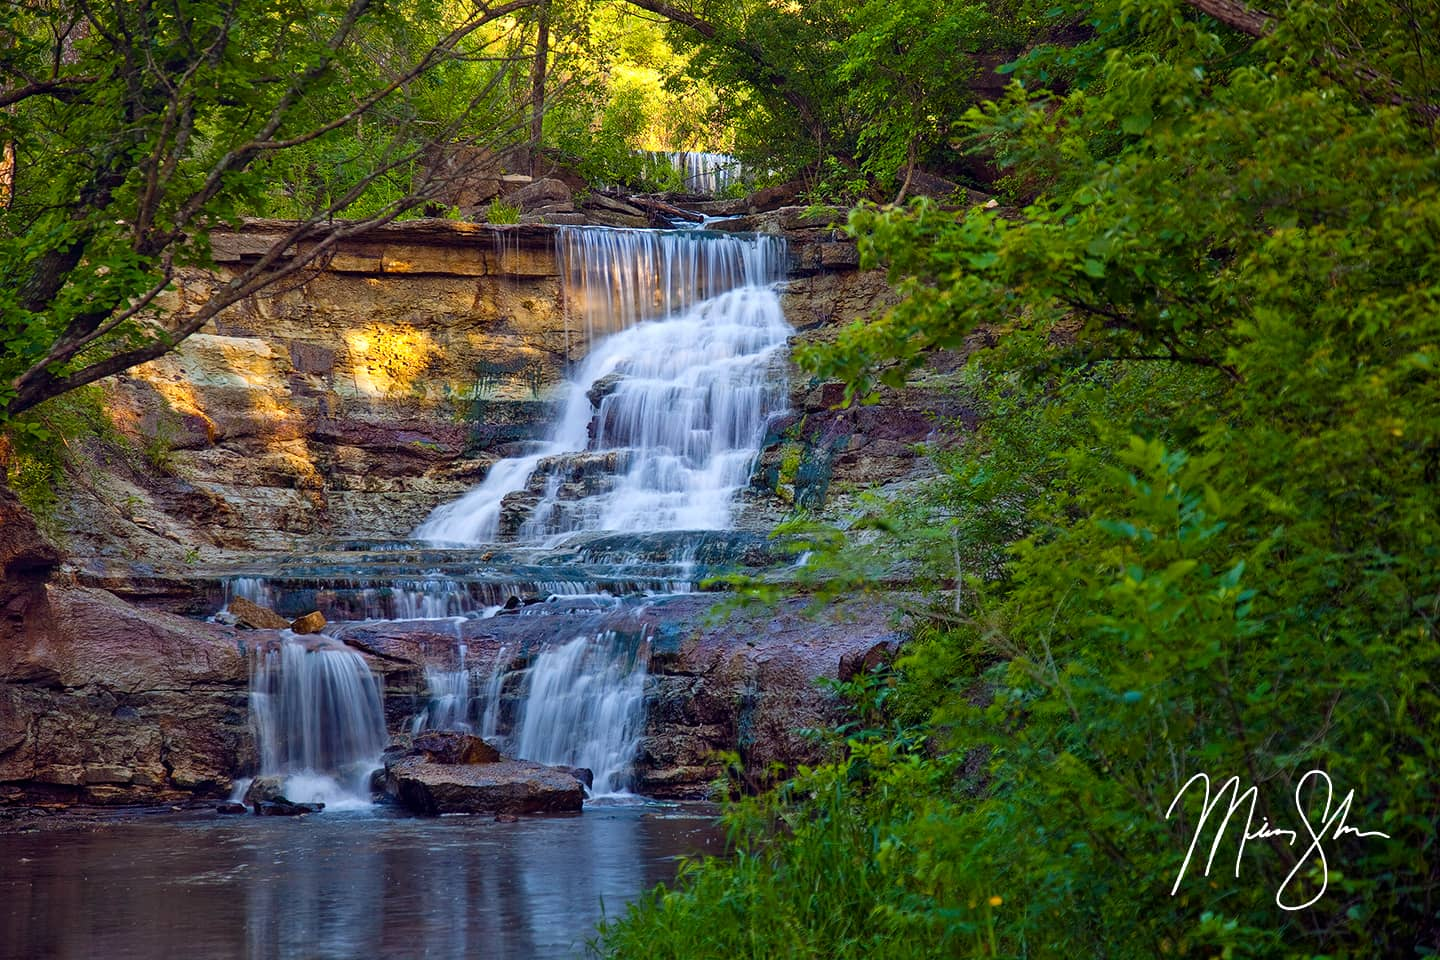 Prather creek falls chase state fishing lake kansas for Good places to go fishing near me